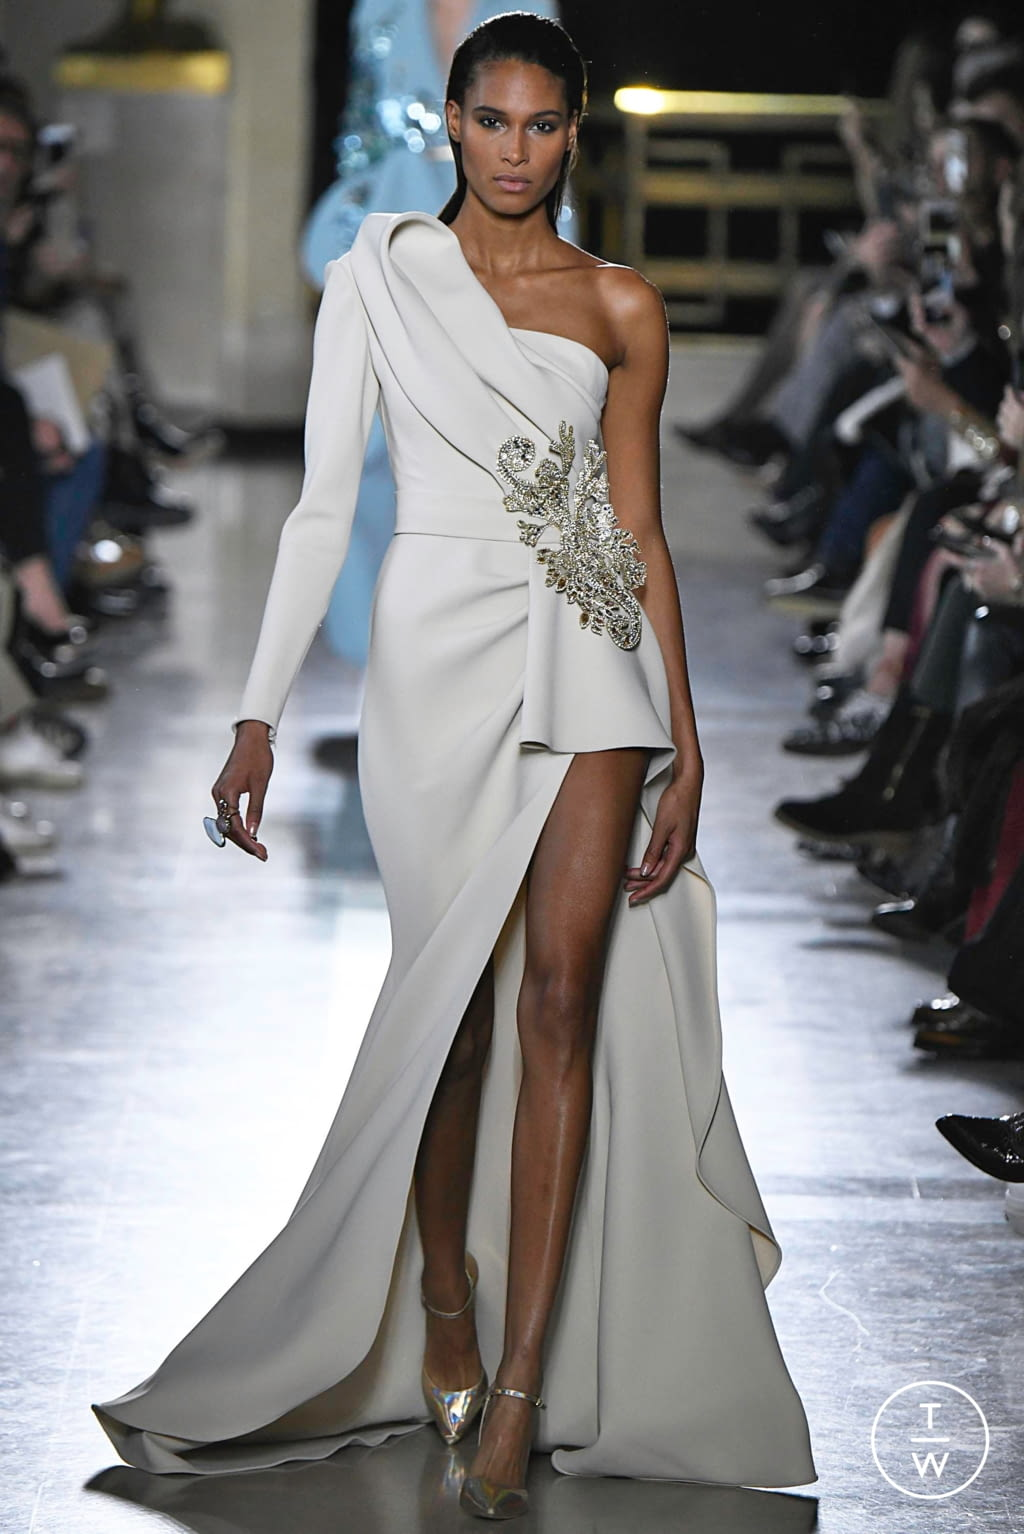 Fashion Week Paris Spring/Summer 2019 look 4 from the Elie Saab collection 高级定制